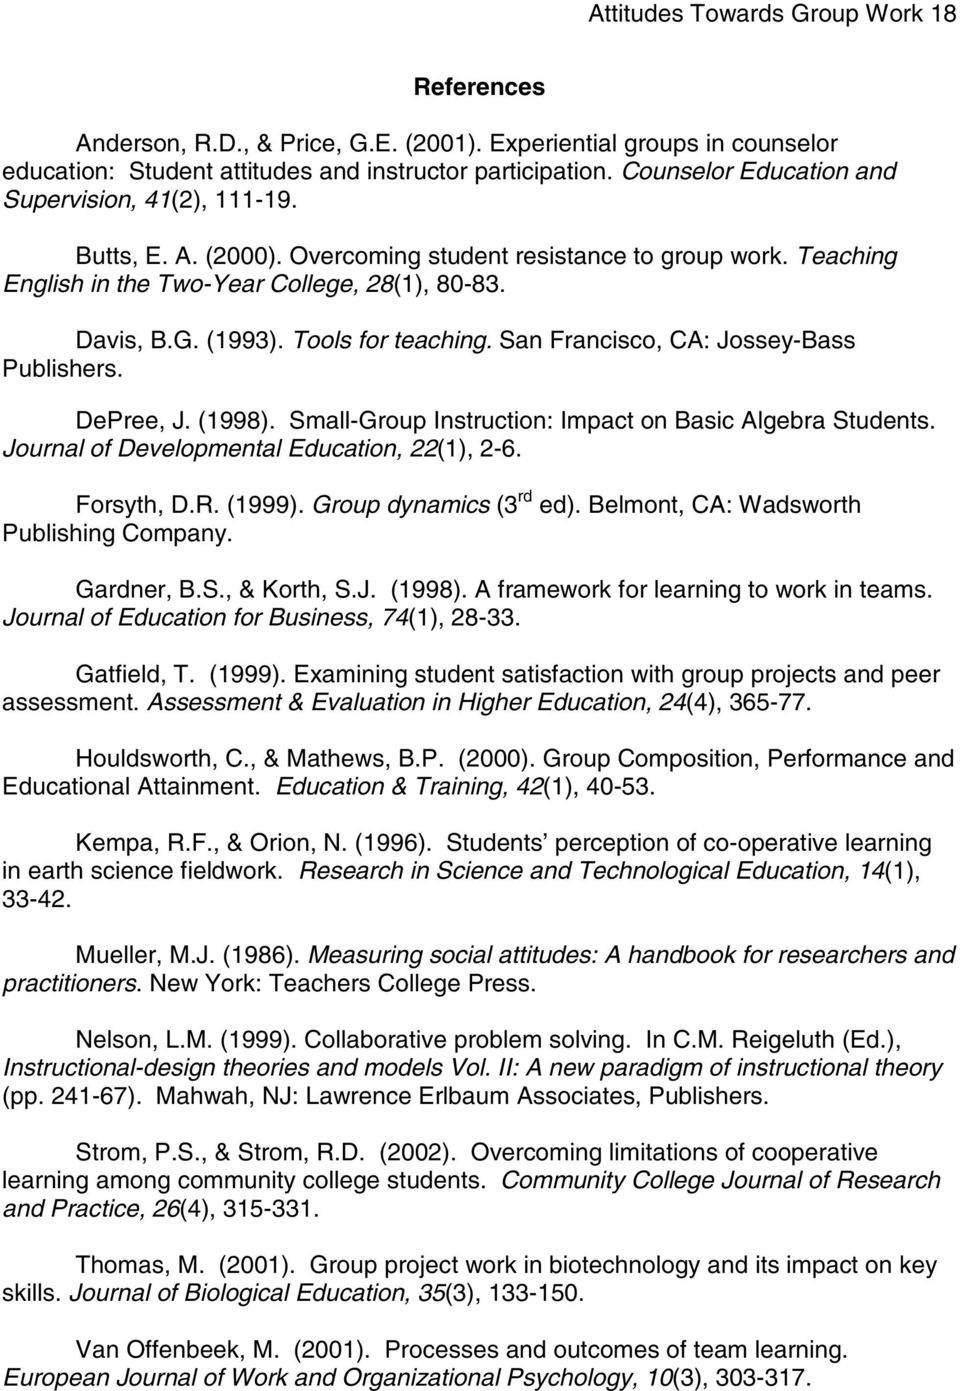 Tools for teaching. San Francisco, CA: Jossey-Bass Publishers. DePree, J. (1998). Small-Group Instruction: Impact on Basic Algebra Students. Journal of Developmental Education, 22(1), 2-6. Forsyth, D.